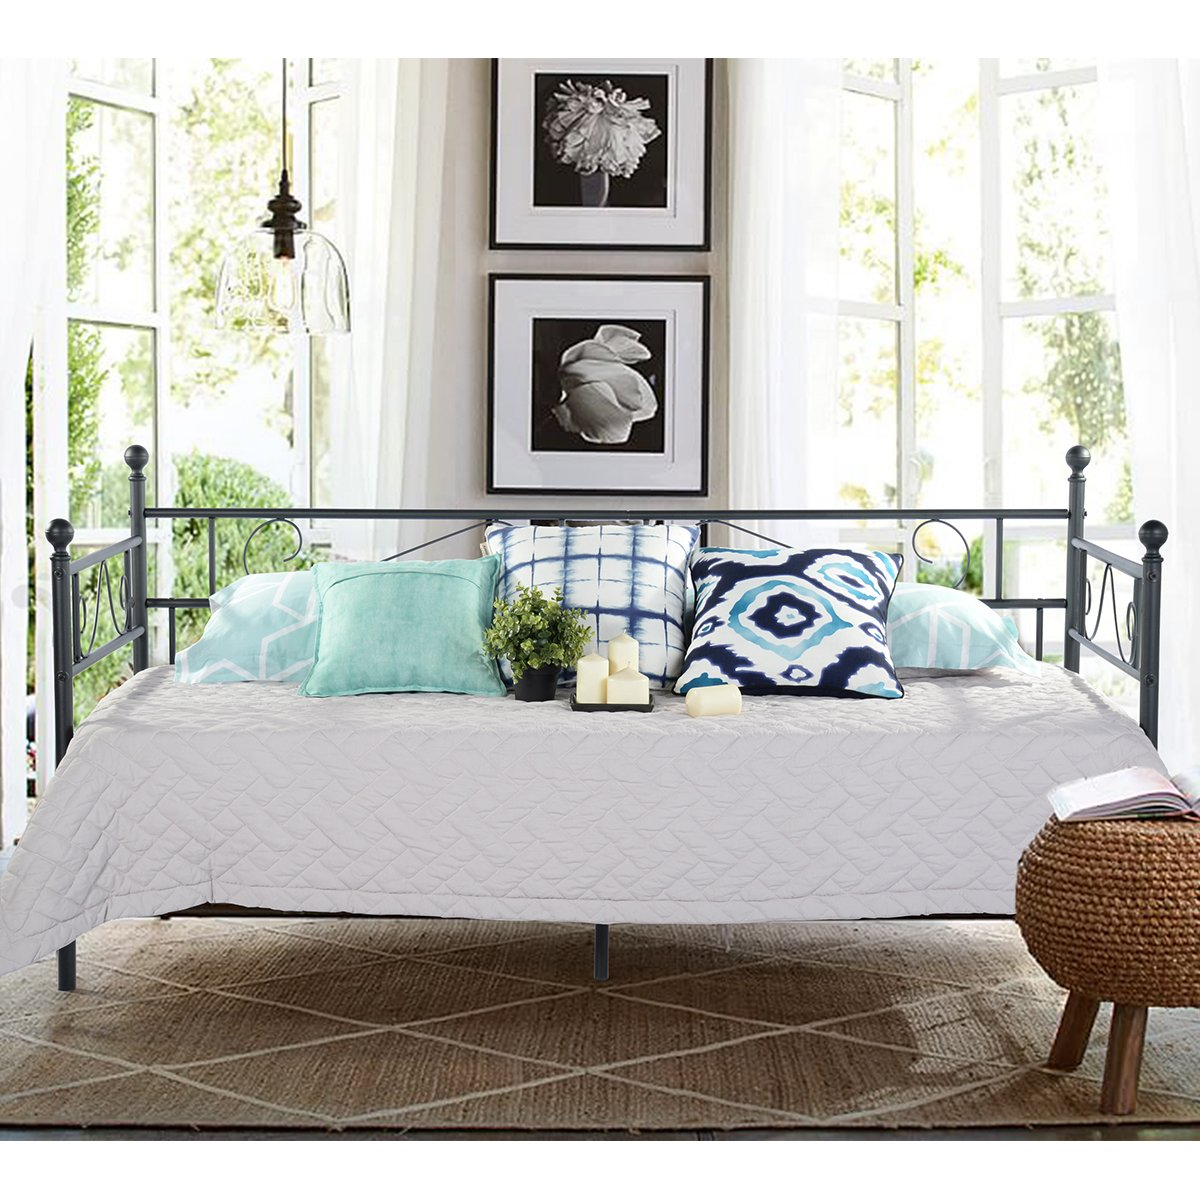 daybeds that work for every lifestyle ease bedding with. Black Bedroom Furniture Sets. Home Design Ideas